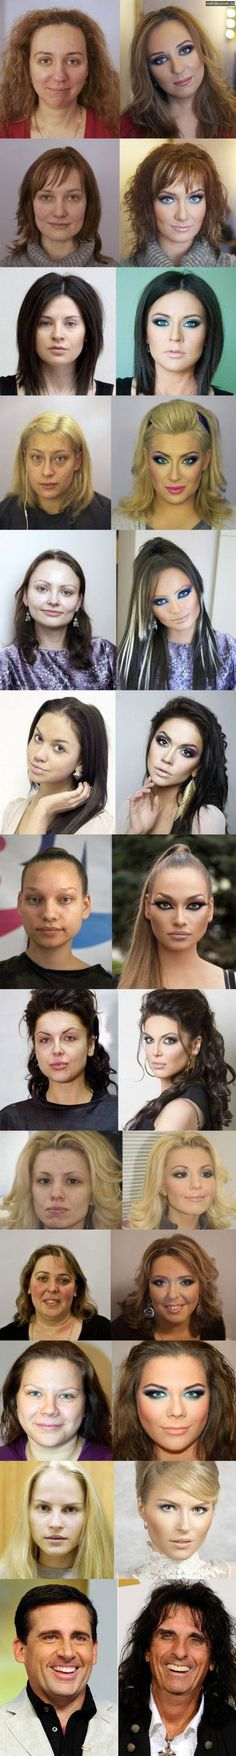 Makeup Before And After. The Transformations Are Insane, Especially The Last One...